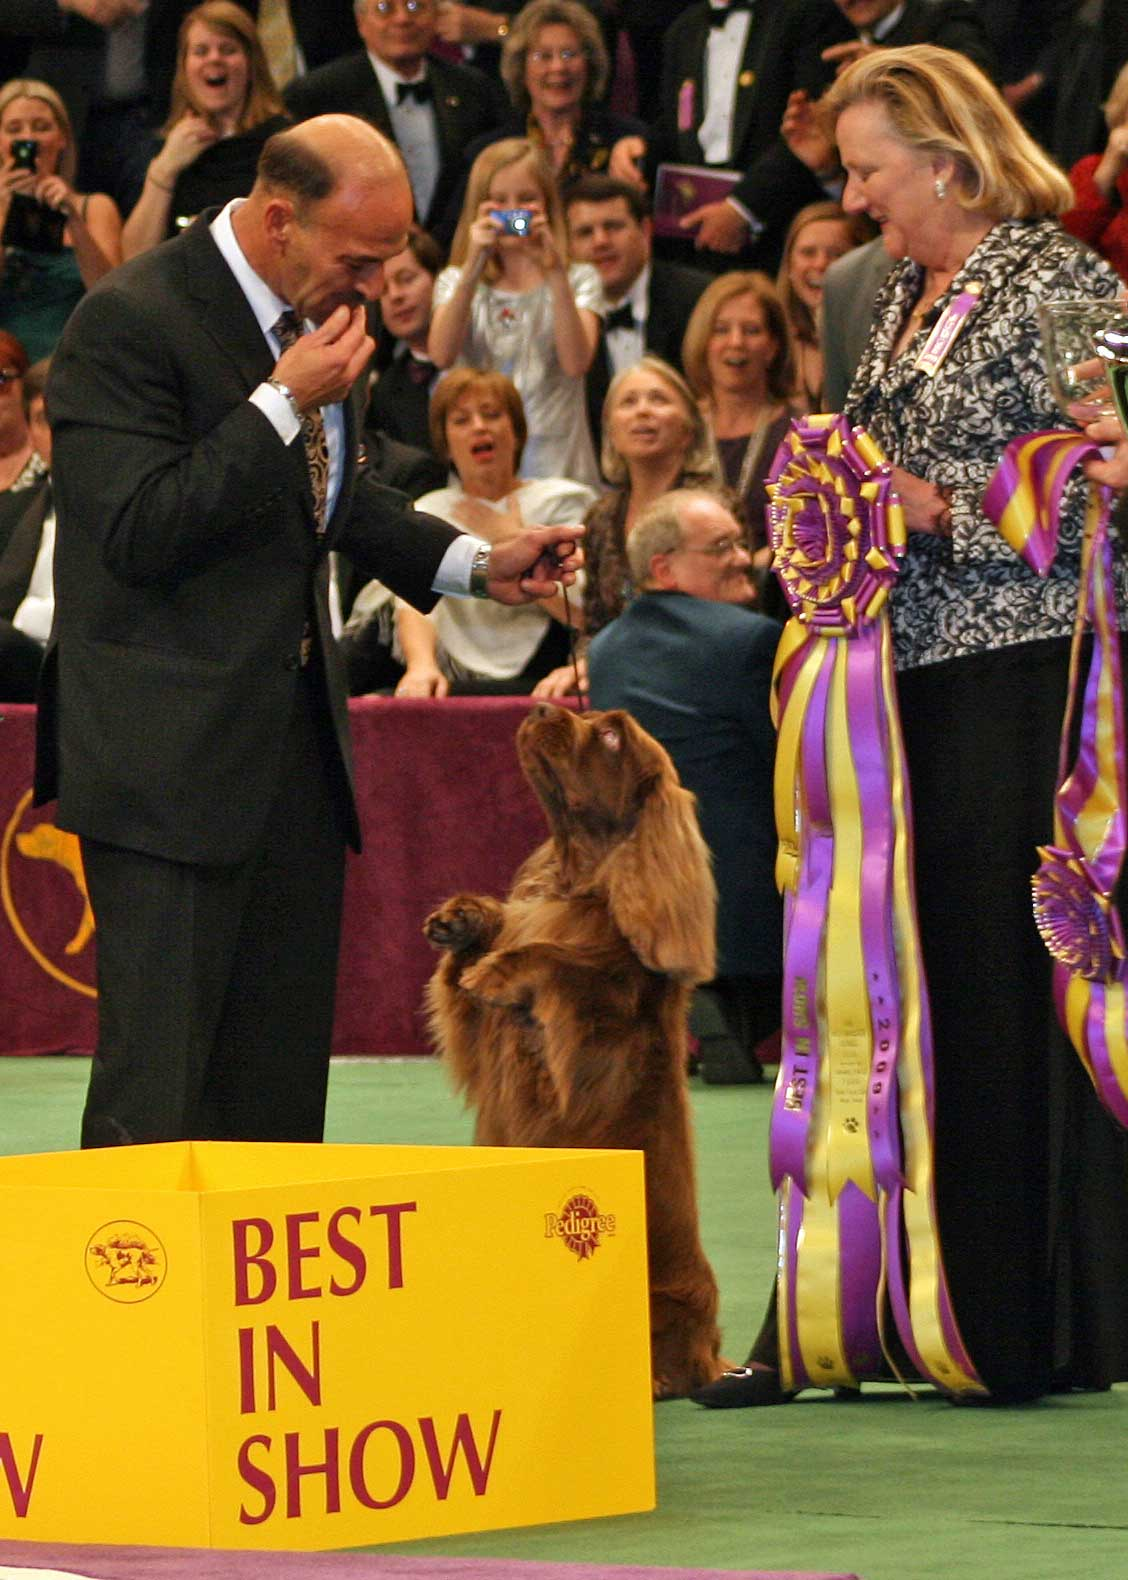 List Of Best In Show Winners Of The Westminster Kennel